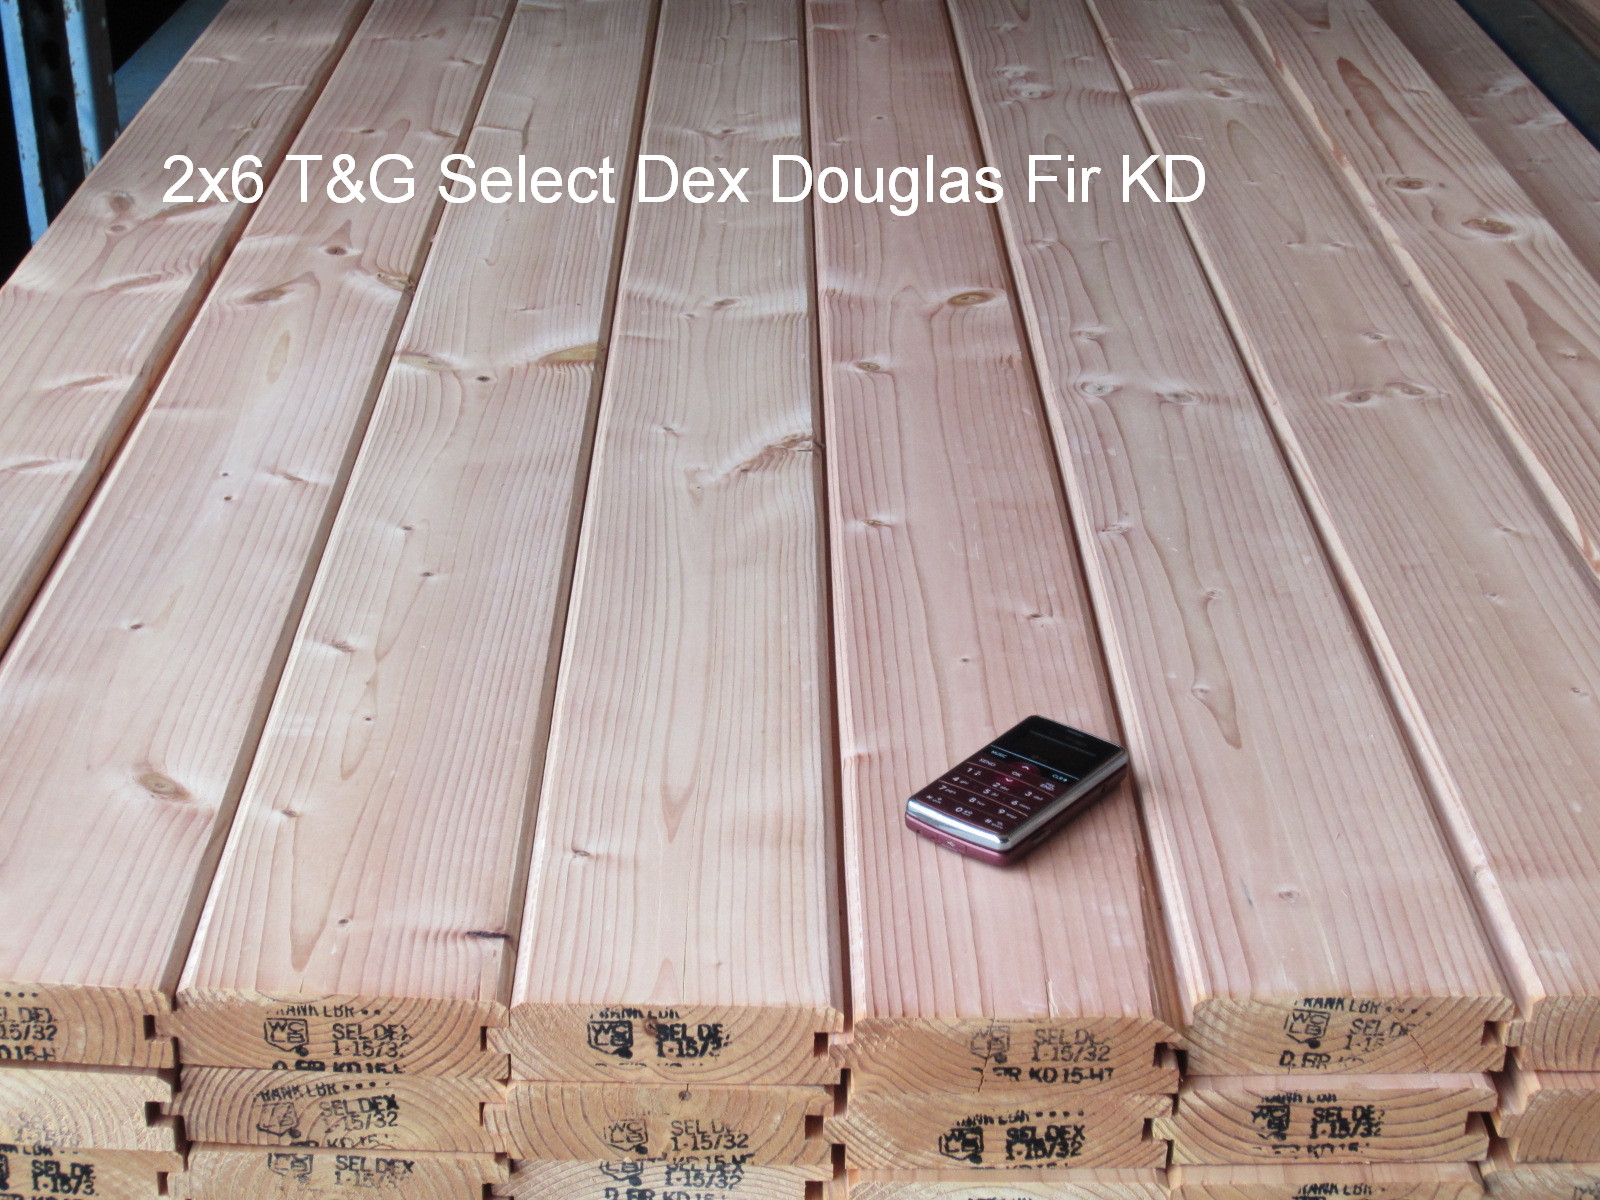 Douglas fir timbers and lumber grade pictures for T g roof decking